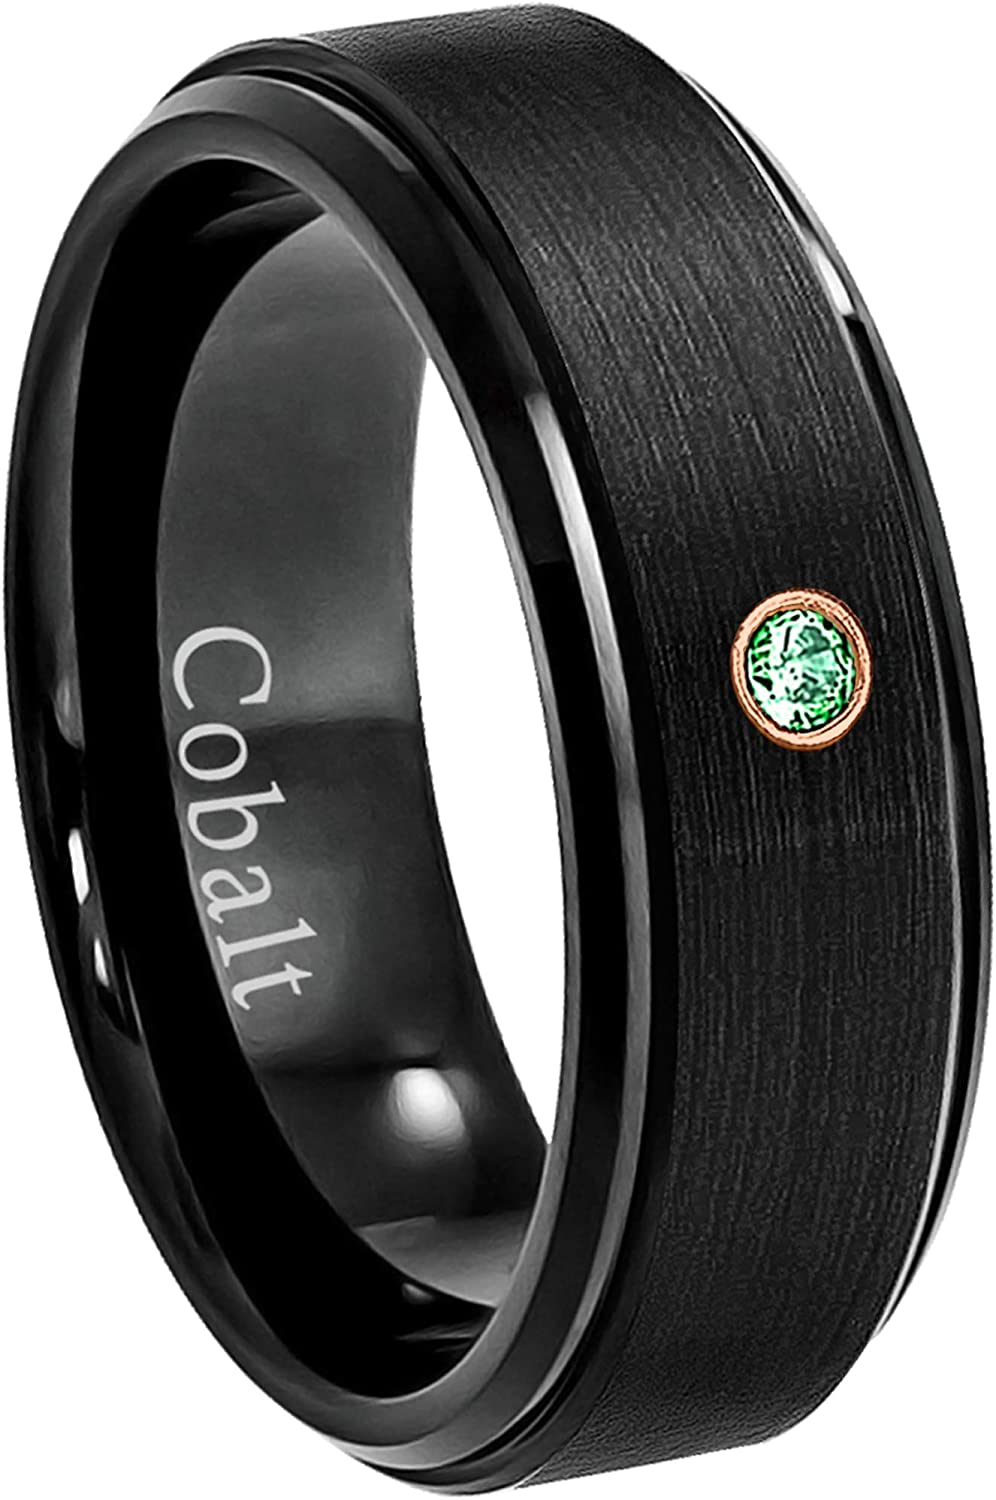 May Birthstone Ring Jewelry Avalanche 8MM Comfort Fit Brushed Black Ion Stepped Edge Mens Cobalt Chrome Wedding Band 0.07ct Emerald Cobalt Ring